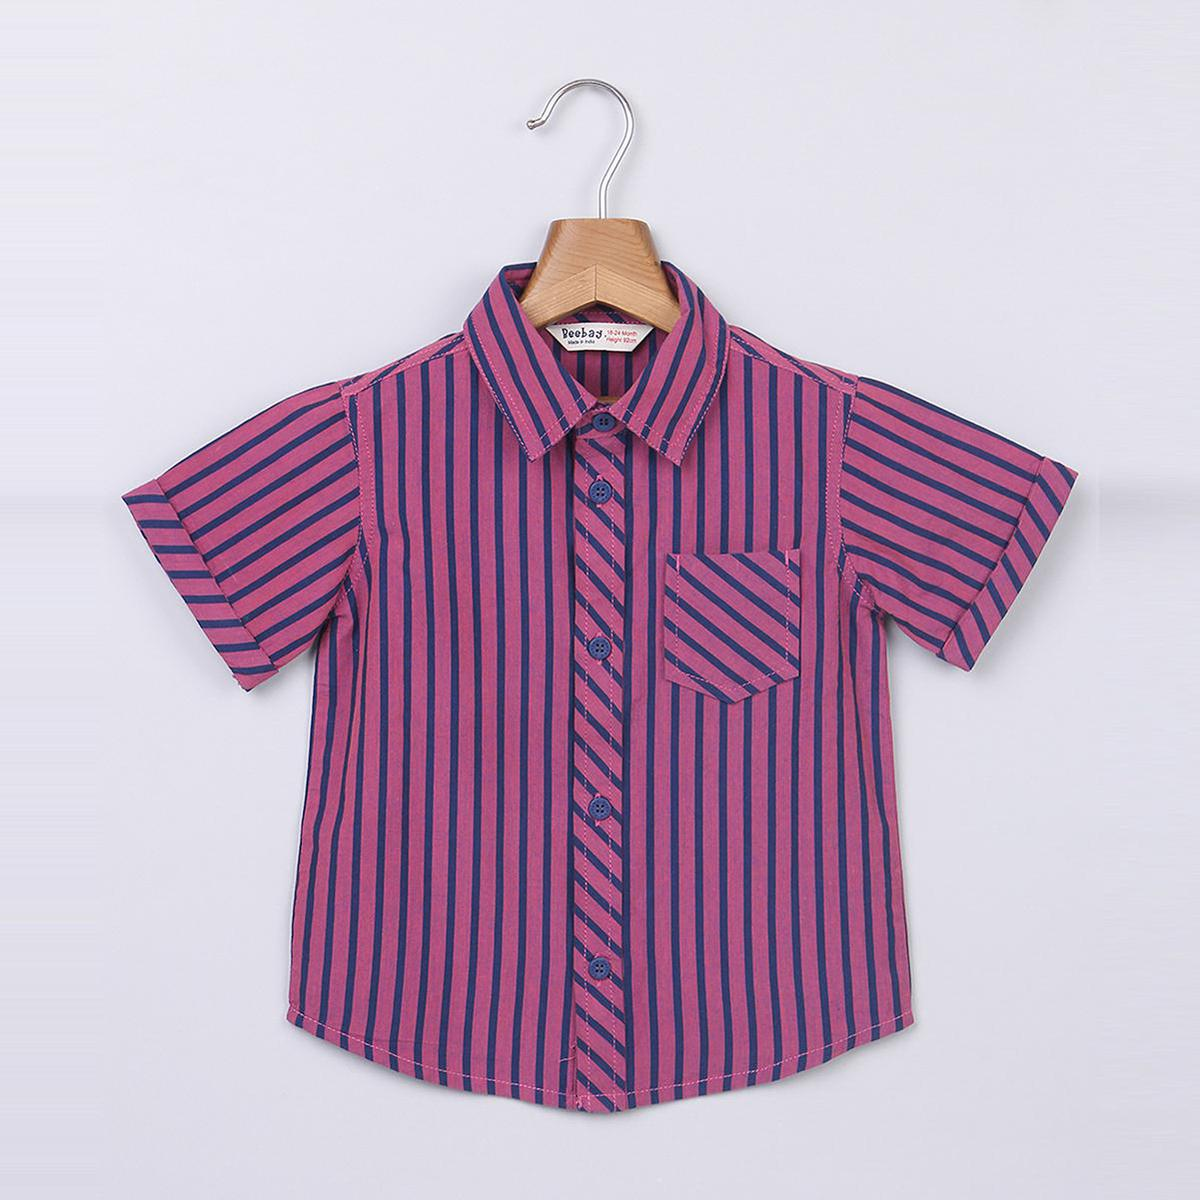 Beebay Pink And Blue Stripe Shirt For Kids